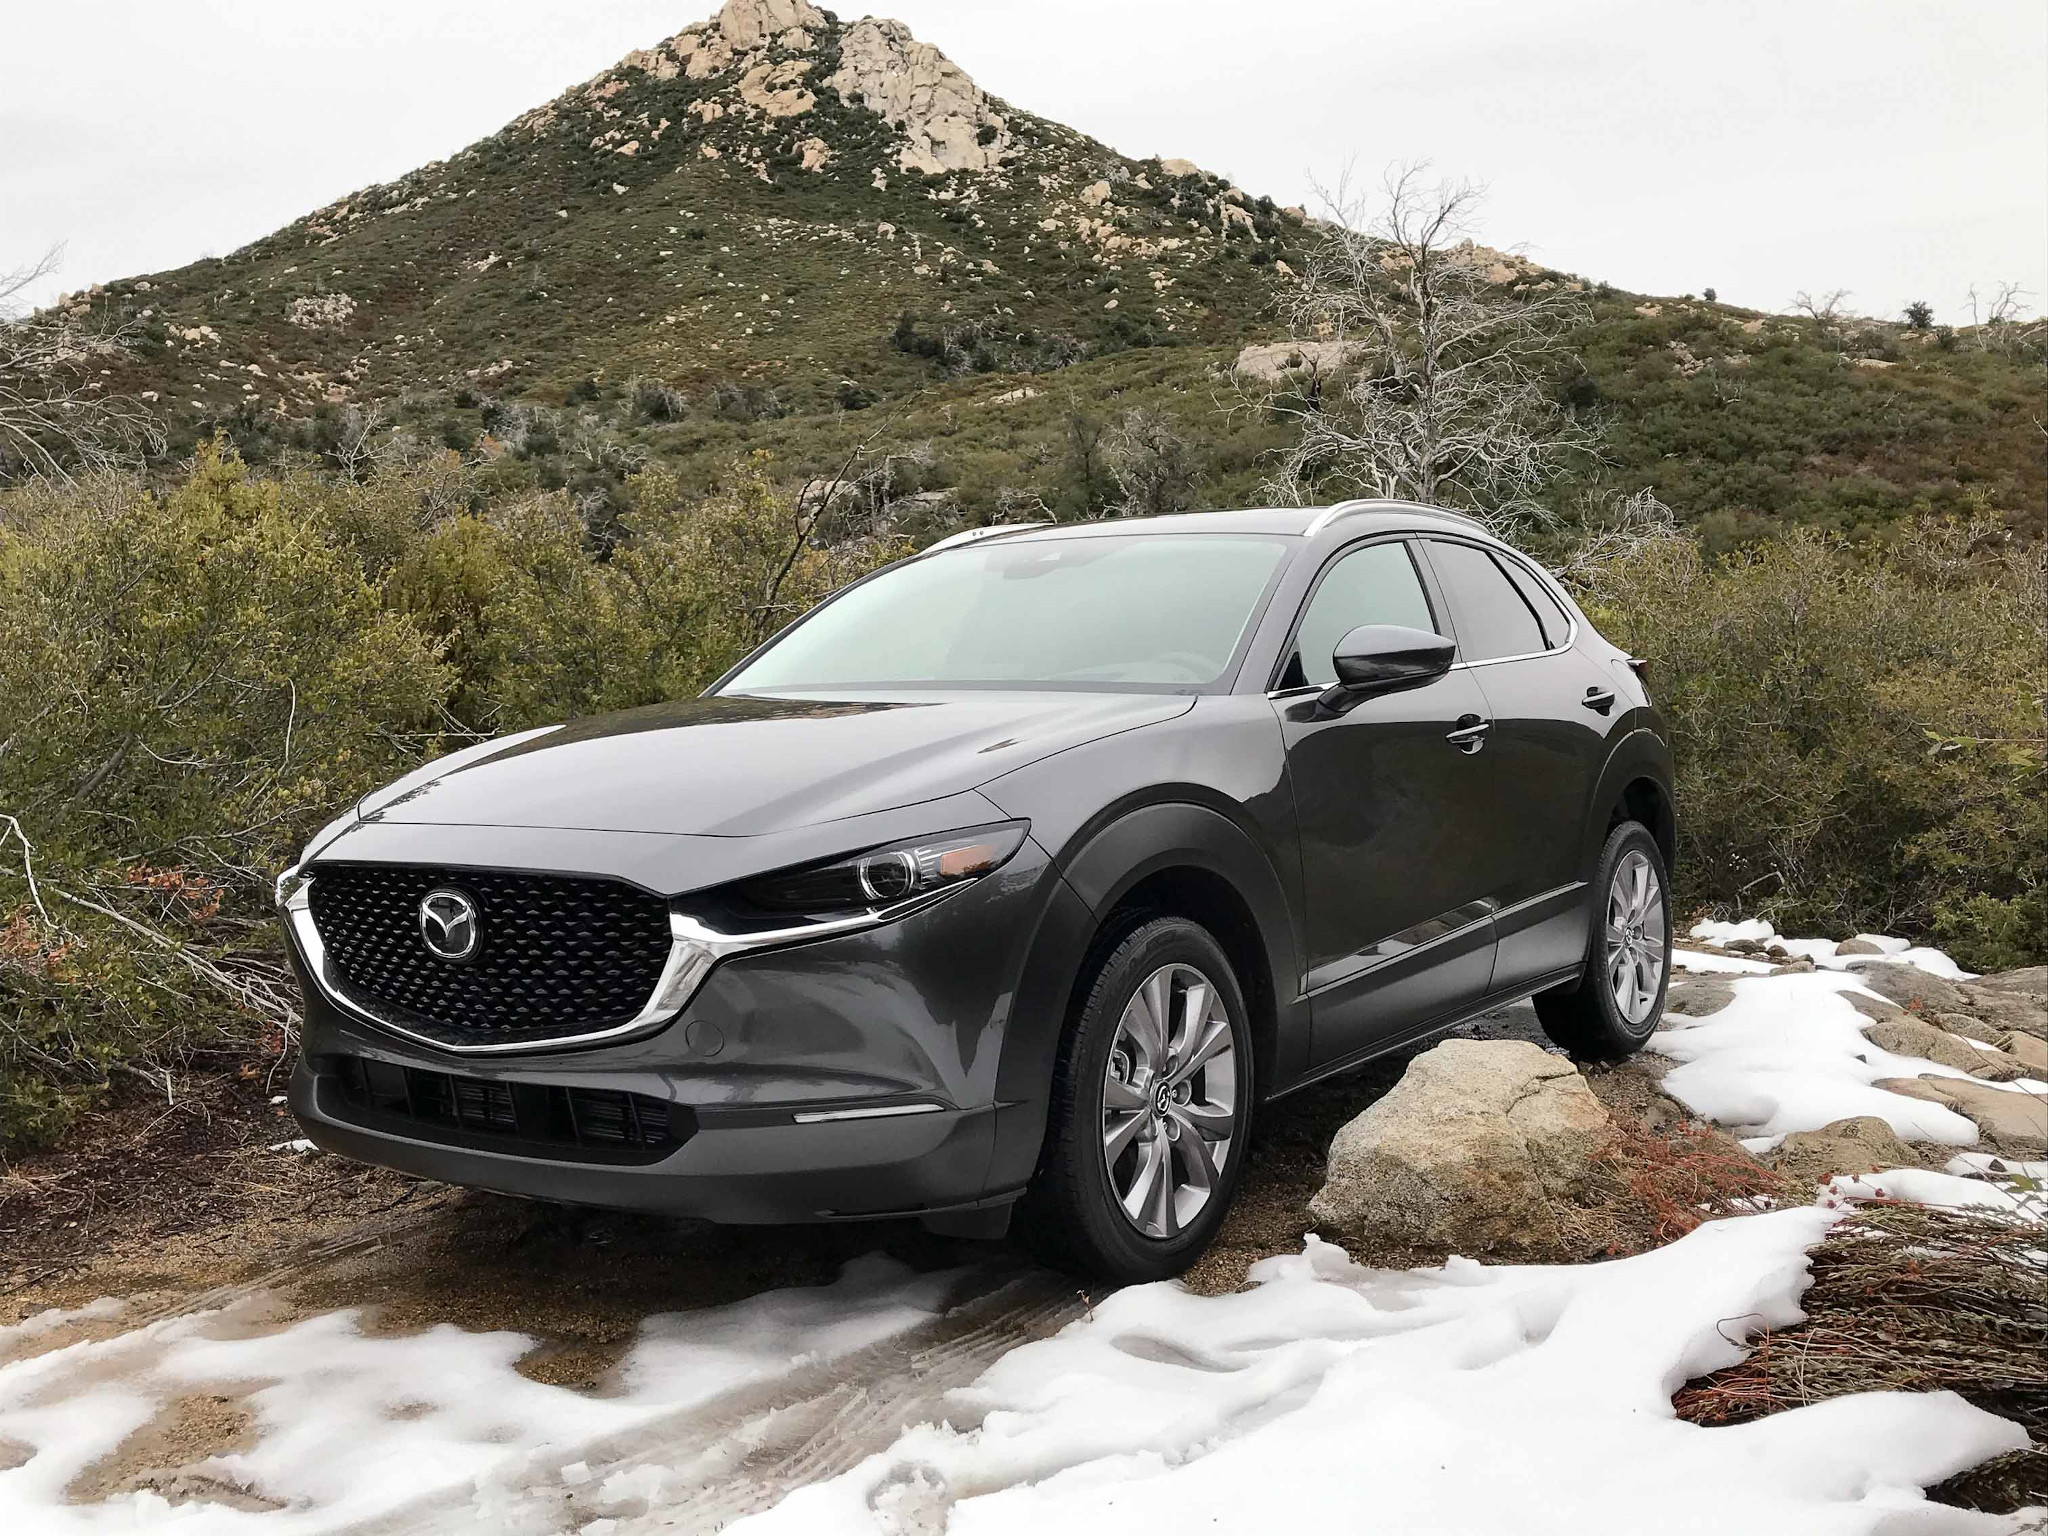 2020 Mazda CX-30 Review: Stylish Small SUV Right-Sized for U.S.